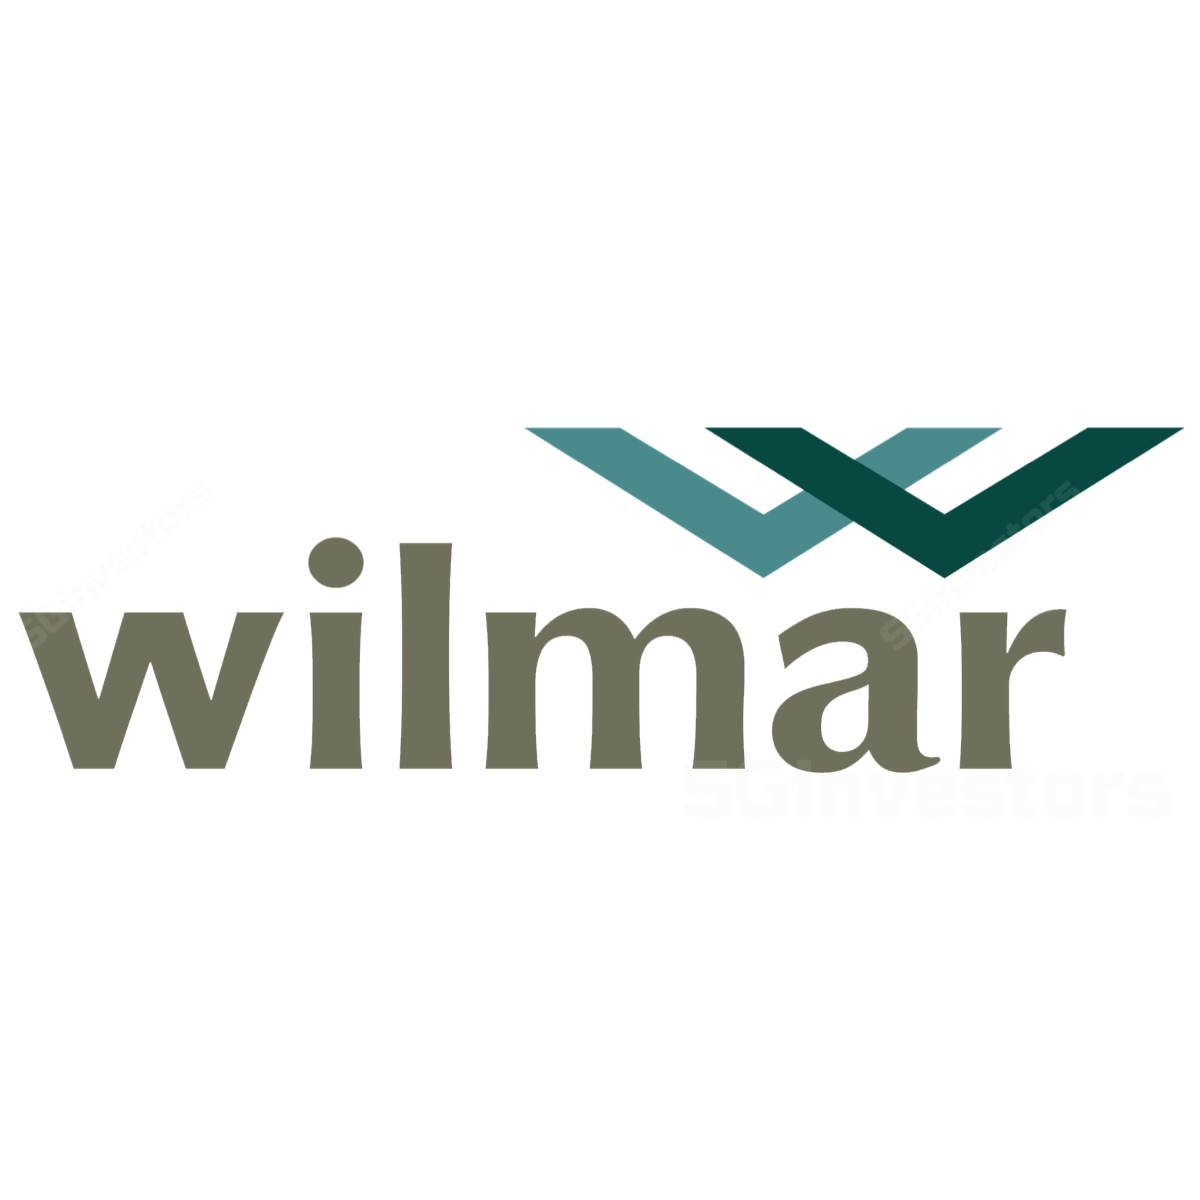 Wilmar - RHB Invest 2017-05-15: An Update On The Potential China Listing